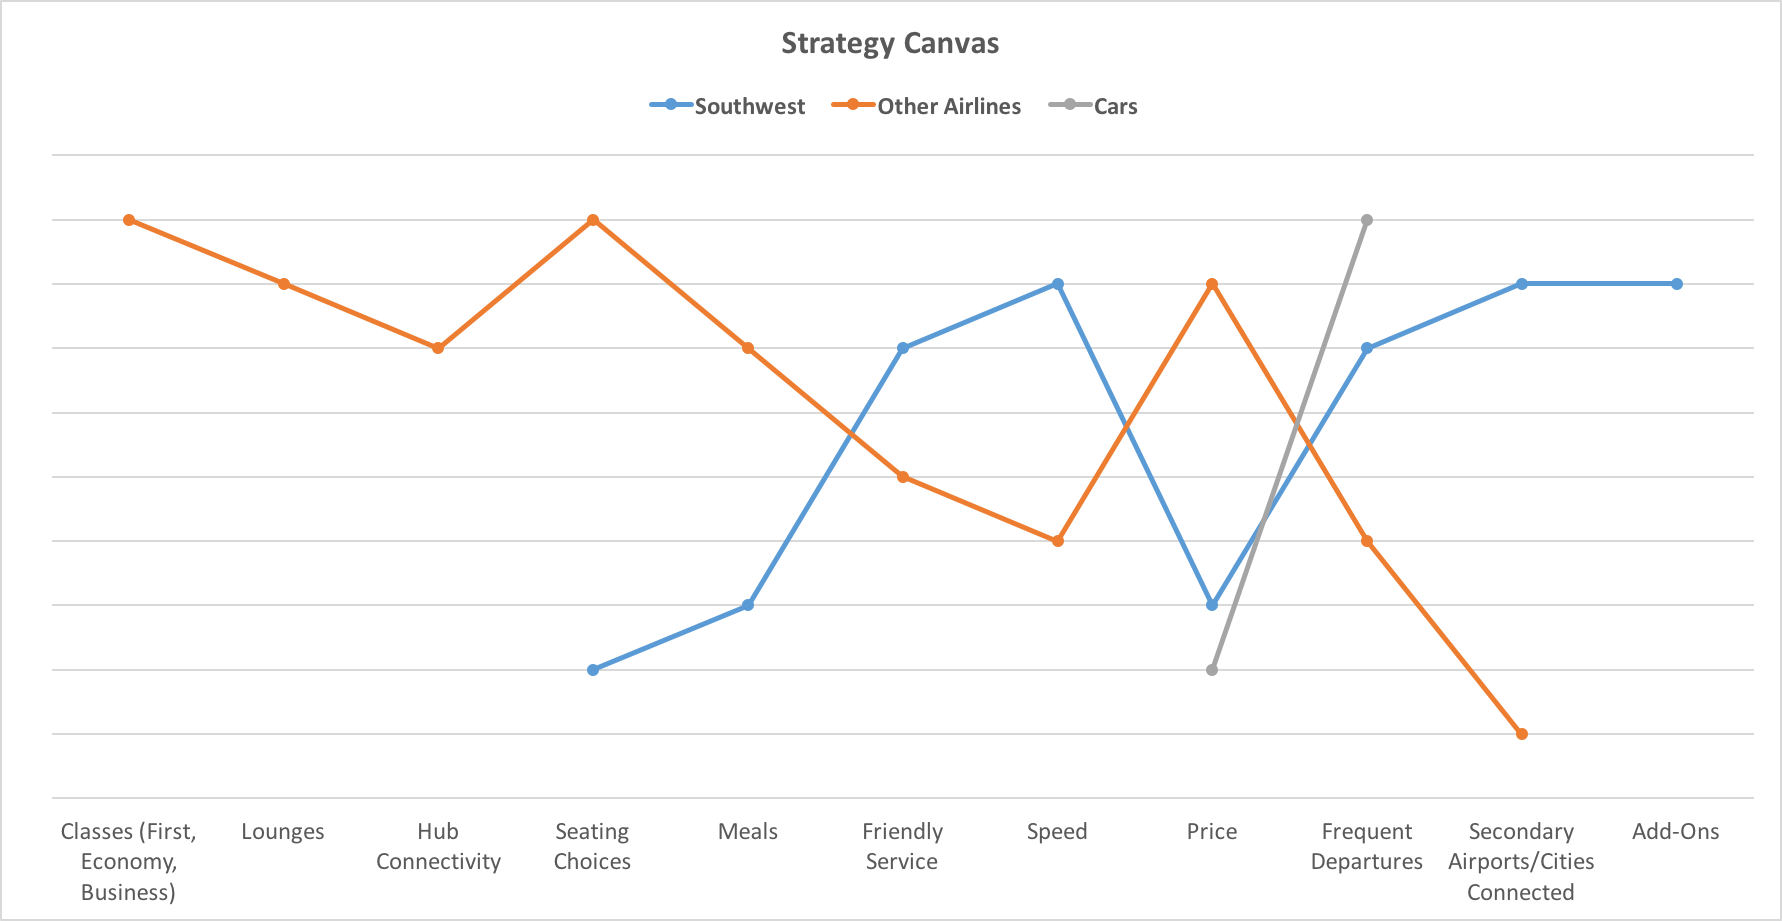 Strategy Canvas Southwest vs. Airlines vs. Cars